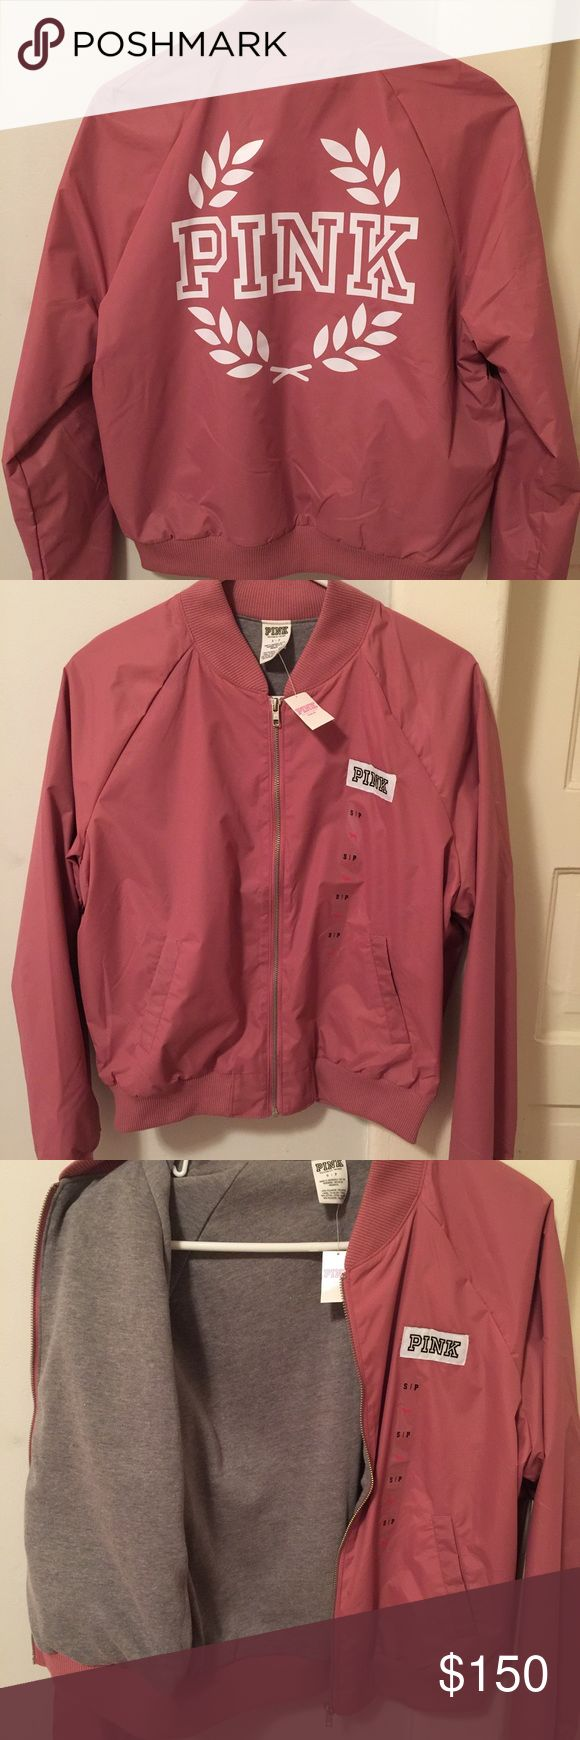 b3fc56b1b Vs PINK Bomber Jacket Begonia LAST ONE New fall 2016 release -NWT ...